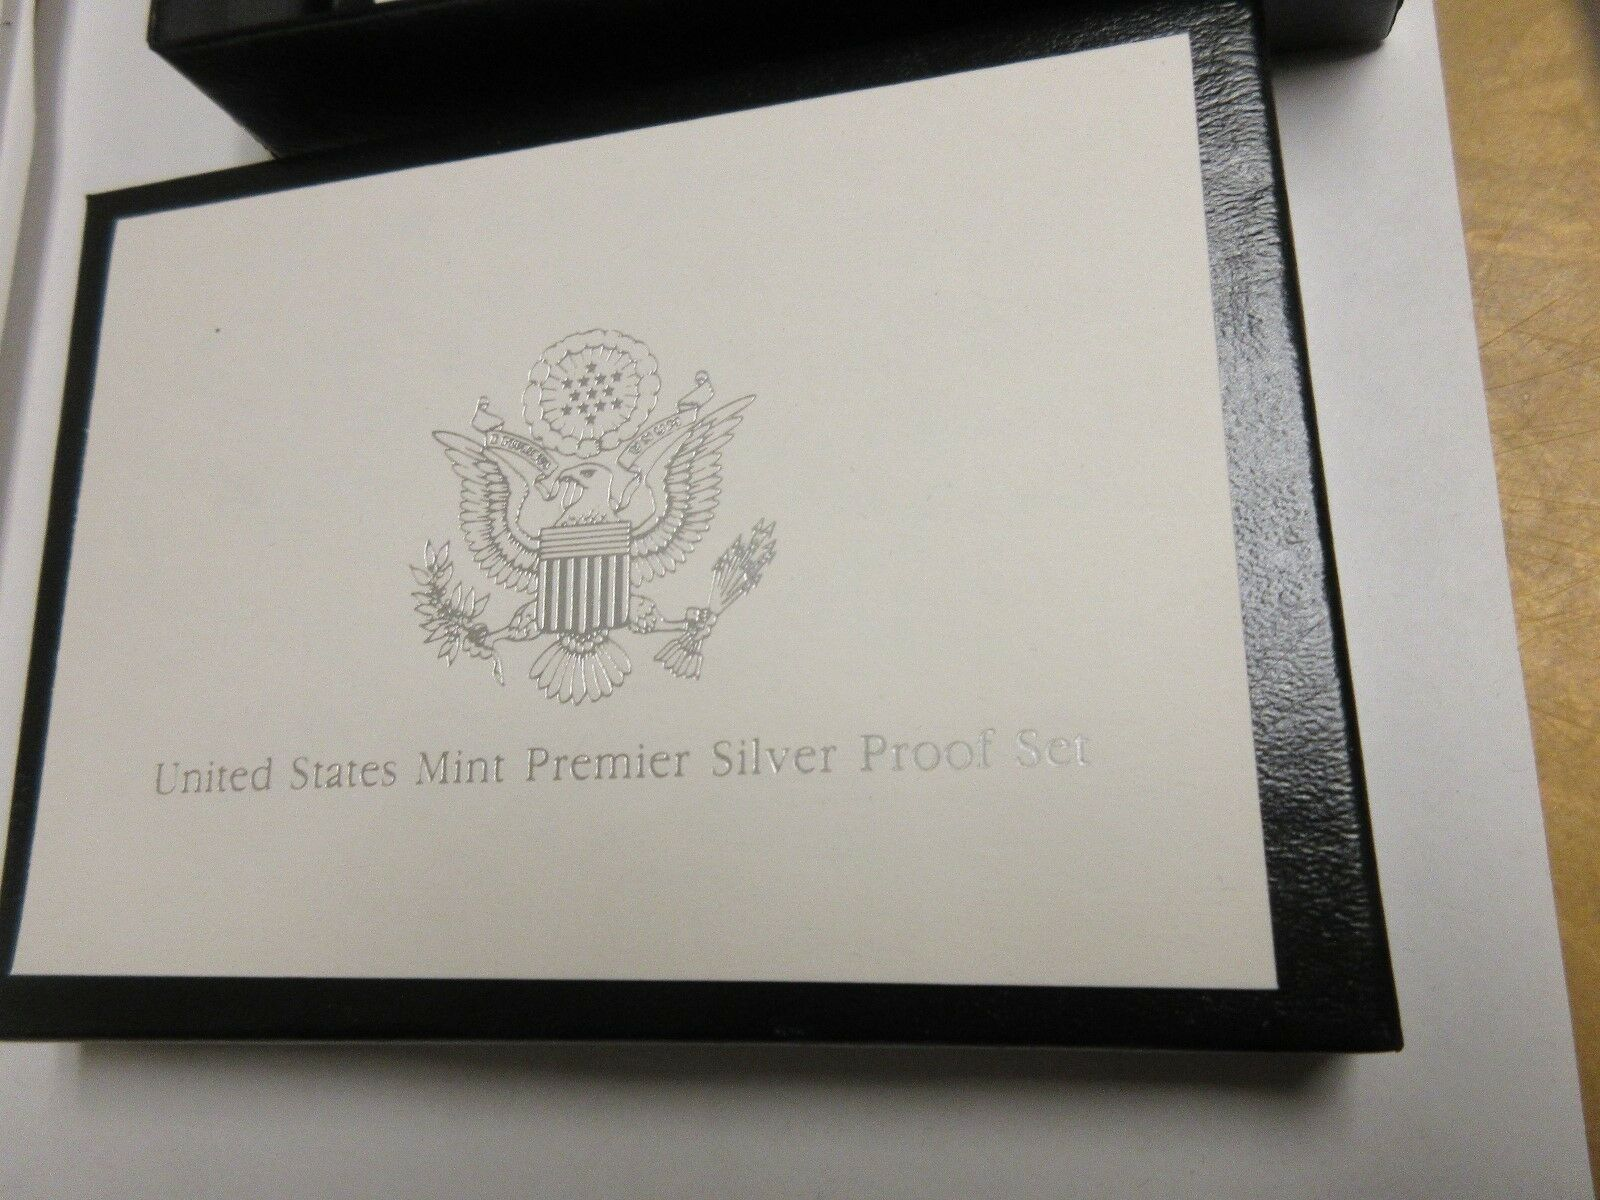 1996 United States Mint Premier Silver Proof Set Lot of